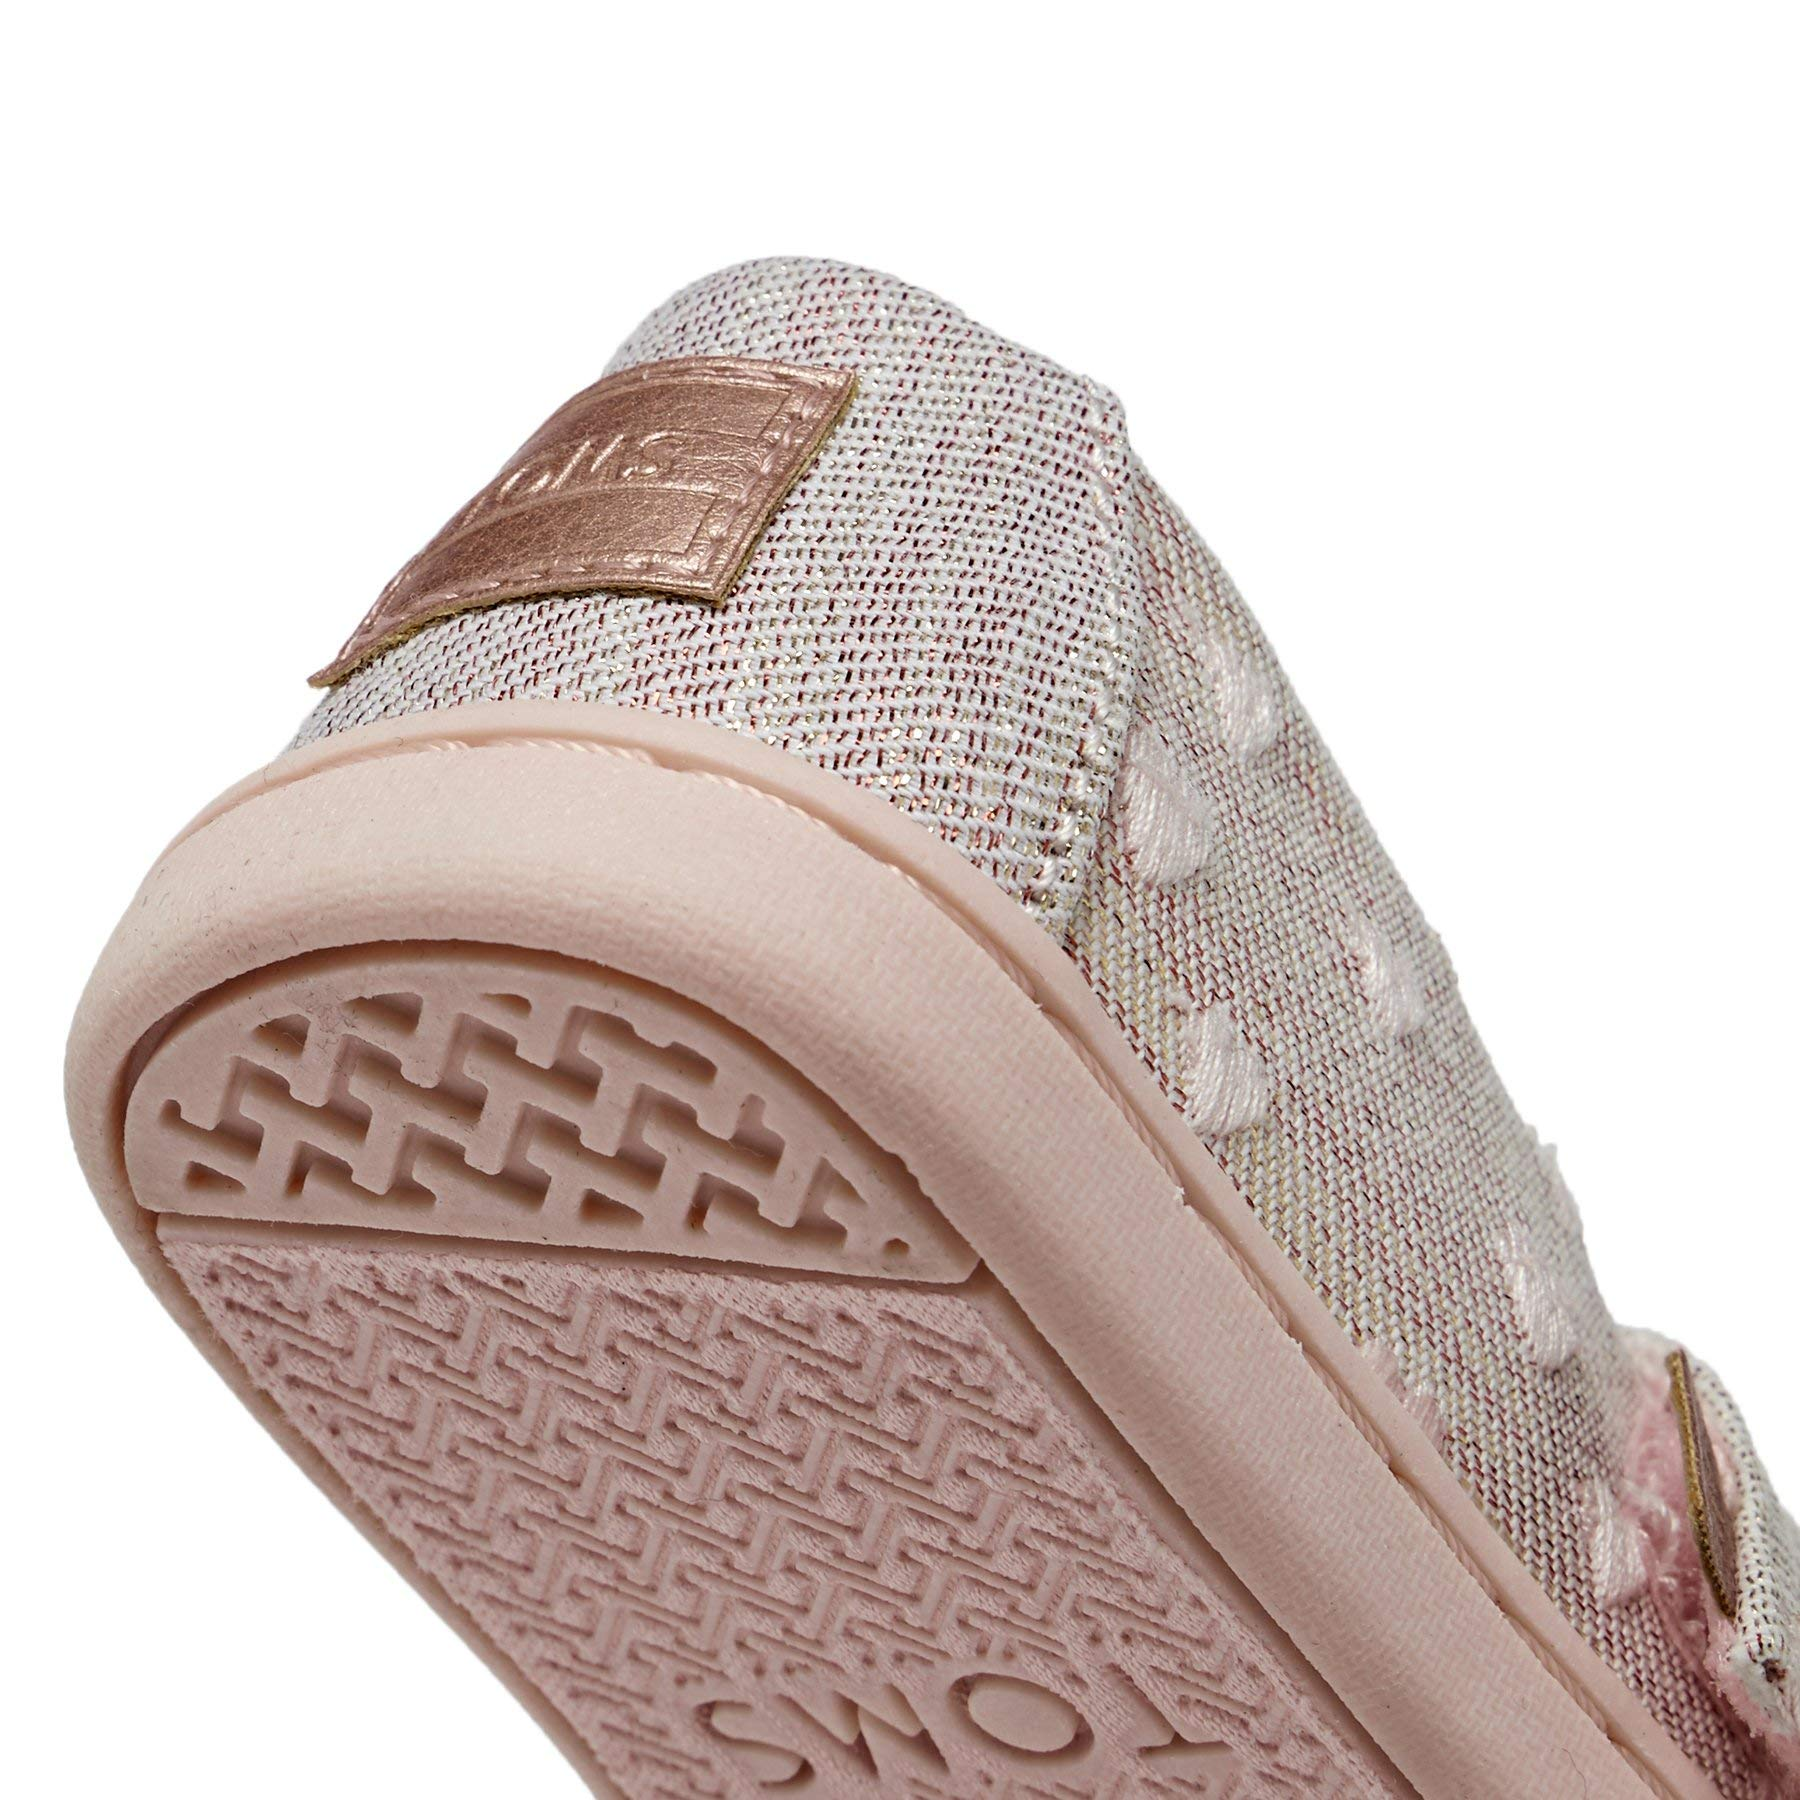 TOMS Kids Baby Girl's Alpargata (Toddler/Little Kid) Rose Cloud Heartsy Twill Glimmer Embroidery 11 M US Little Kid by TOMS Kids (Image #8)